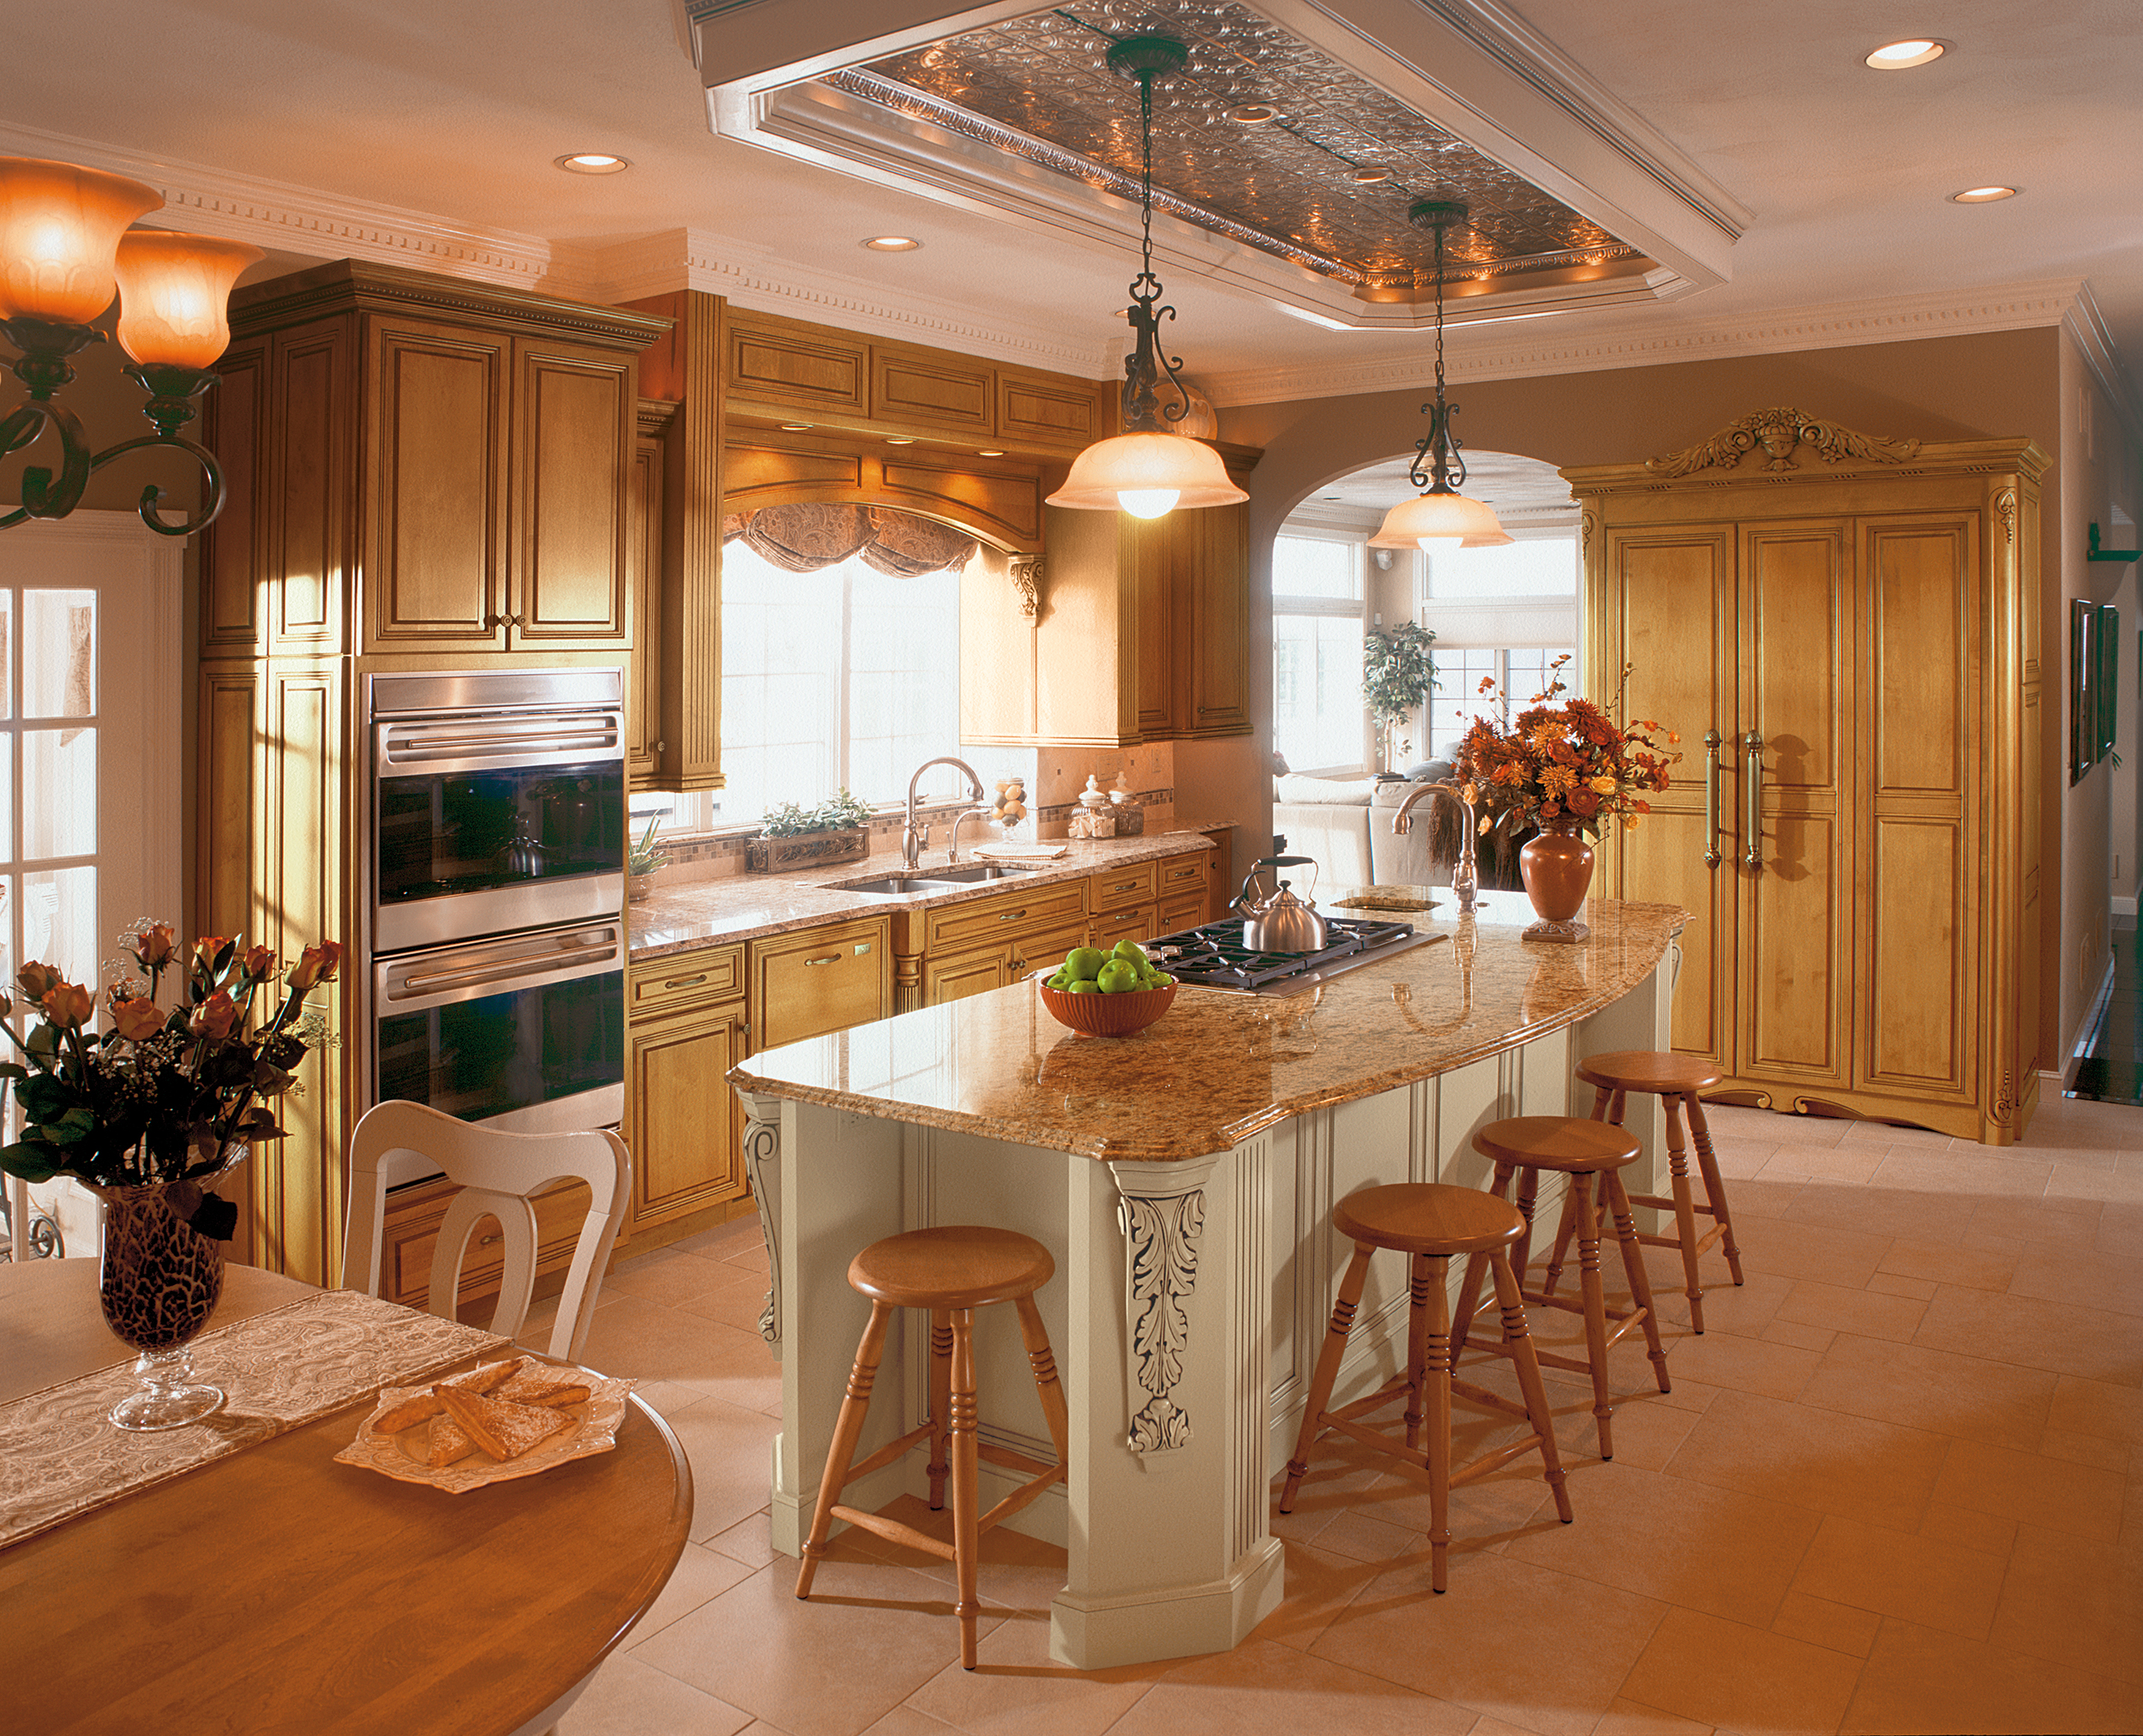 dynasty omega cabinetry north shore ma derry nh looking for professional kitchen cabinet refacing in nh